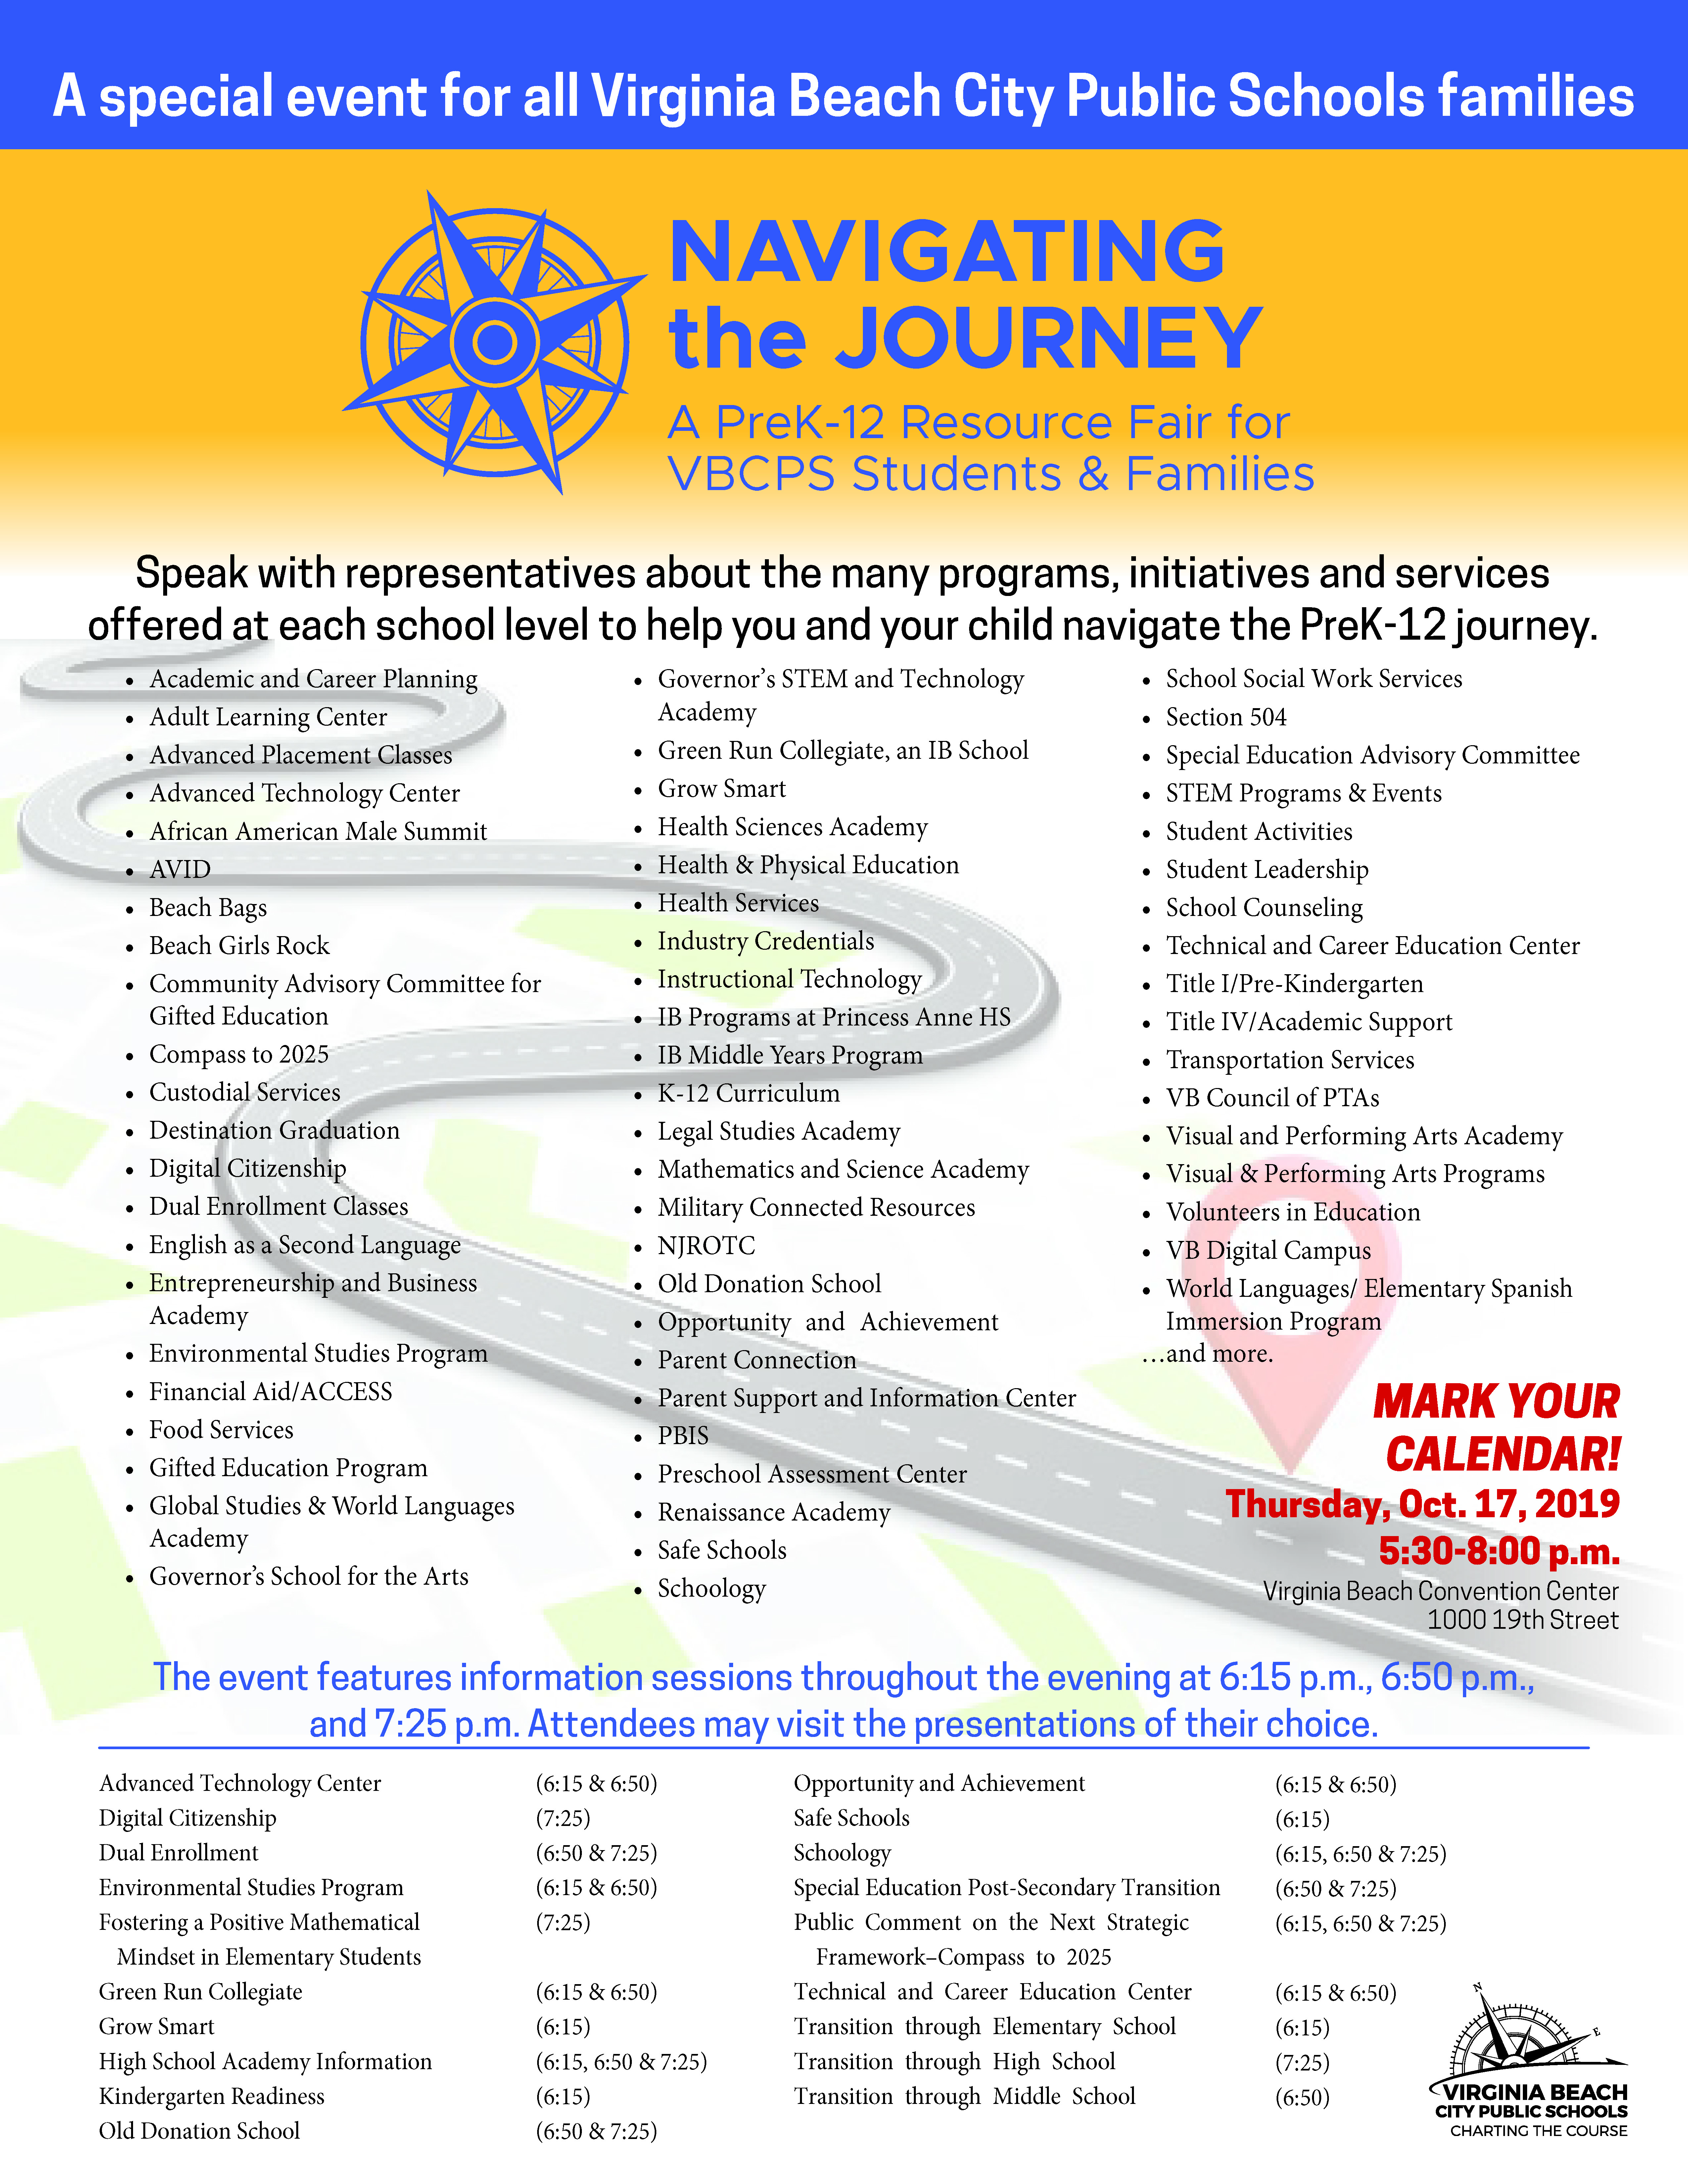 Navigating the Journey flyer